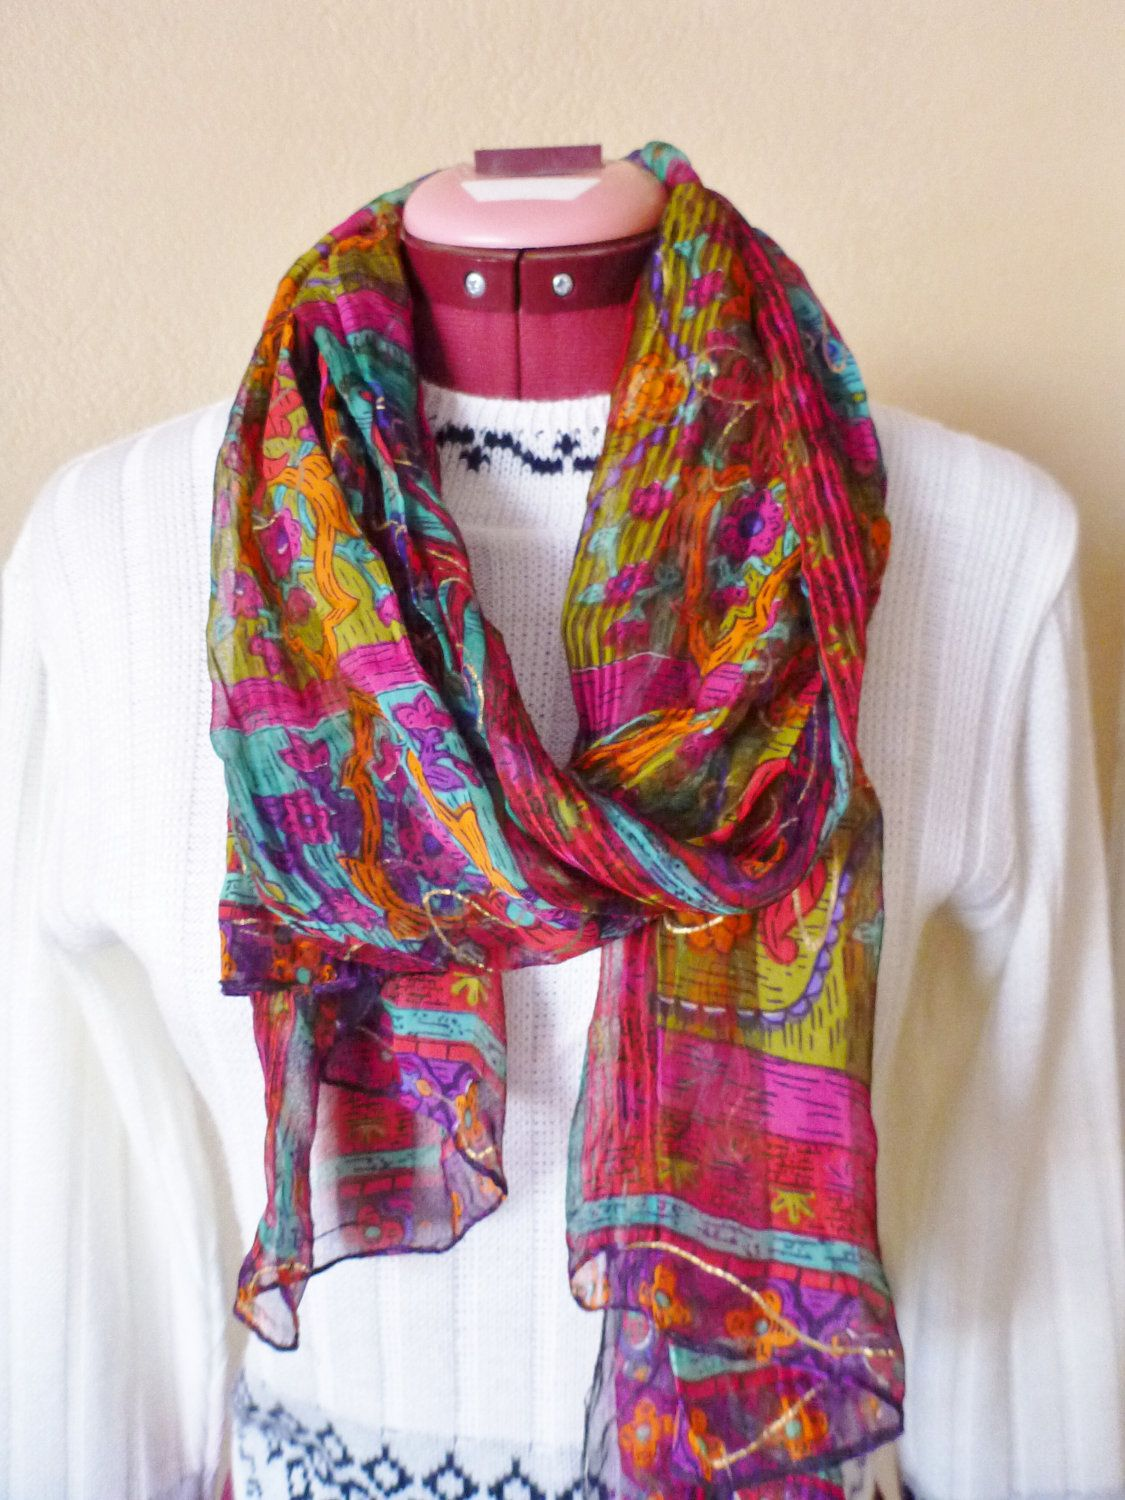 vintage GYPSY WOMAN colorful sheer scarf by june22nd on Etsy, $11.99